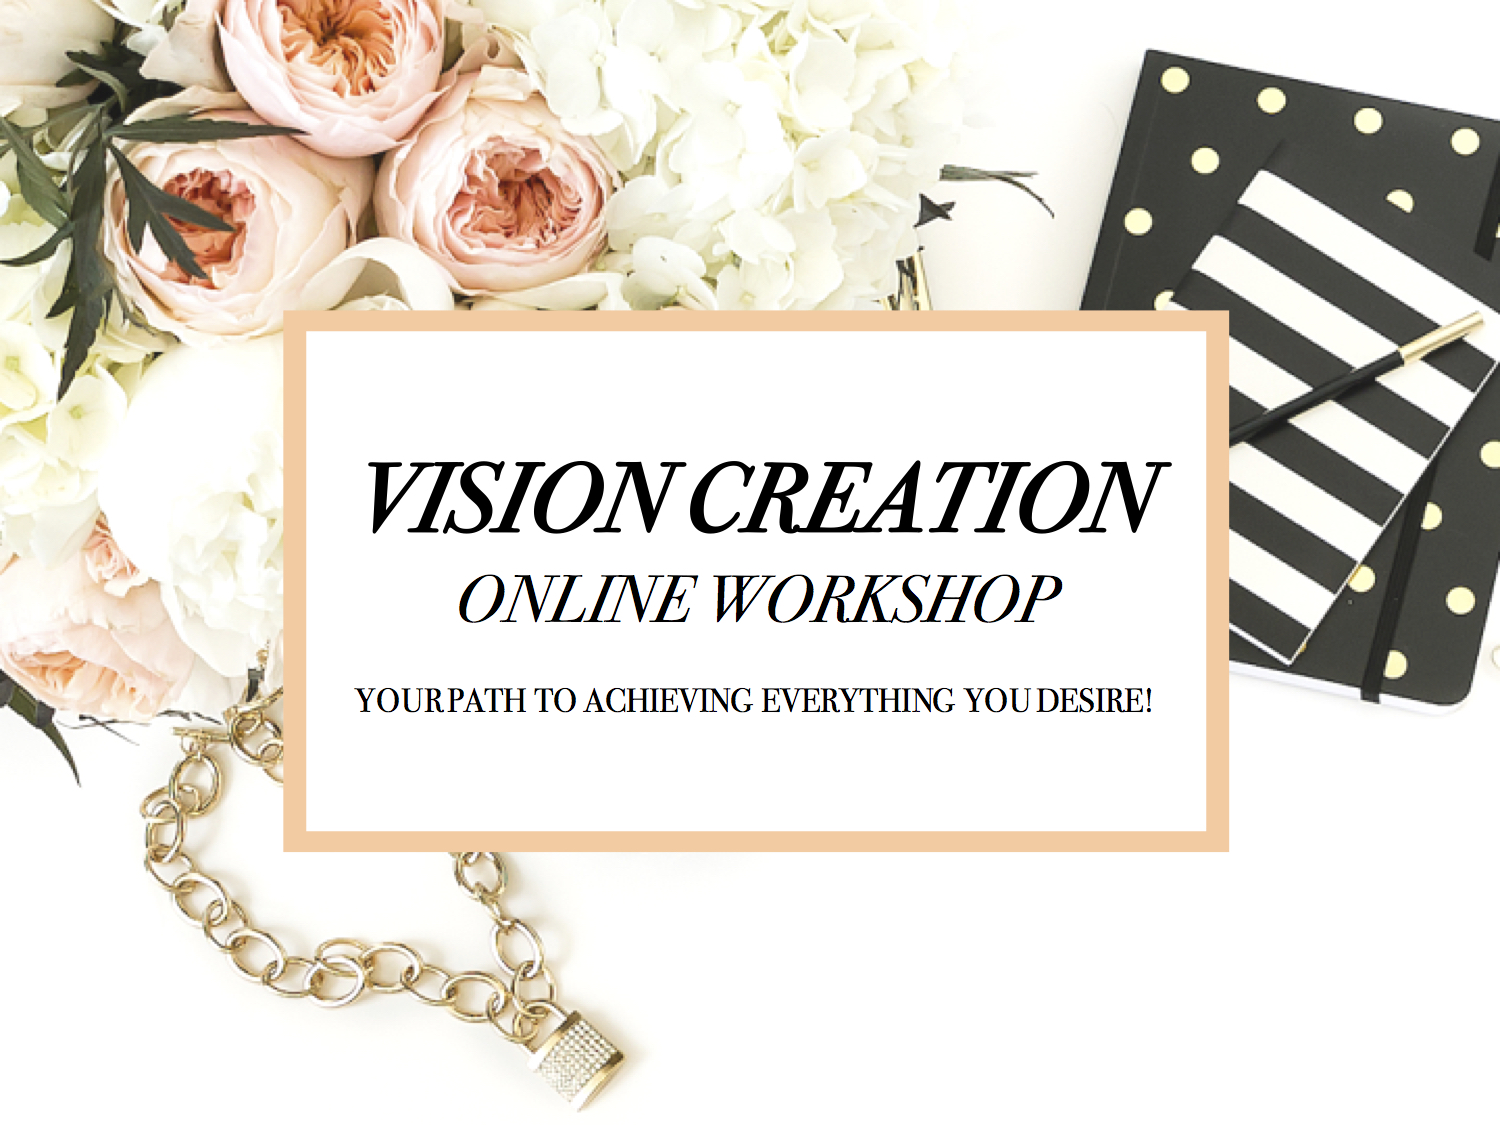 Vision Creation - Discover why you must Vision Create if you want to achieve anything worthwhile. Because you can't just wing it and pray things work out. Not when creating an extraordinary life. Learn how this works so successfully to bring your dreams and goals into reality plus the game-changing Vision Mapping process on how to get anything you want (the same process the great minds of our time have used).AUD $49